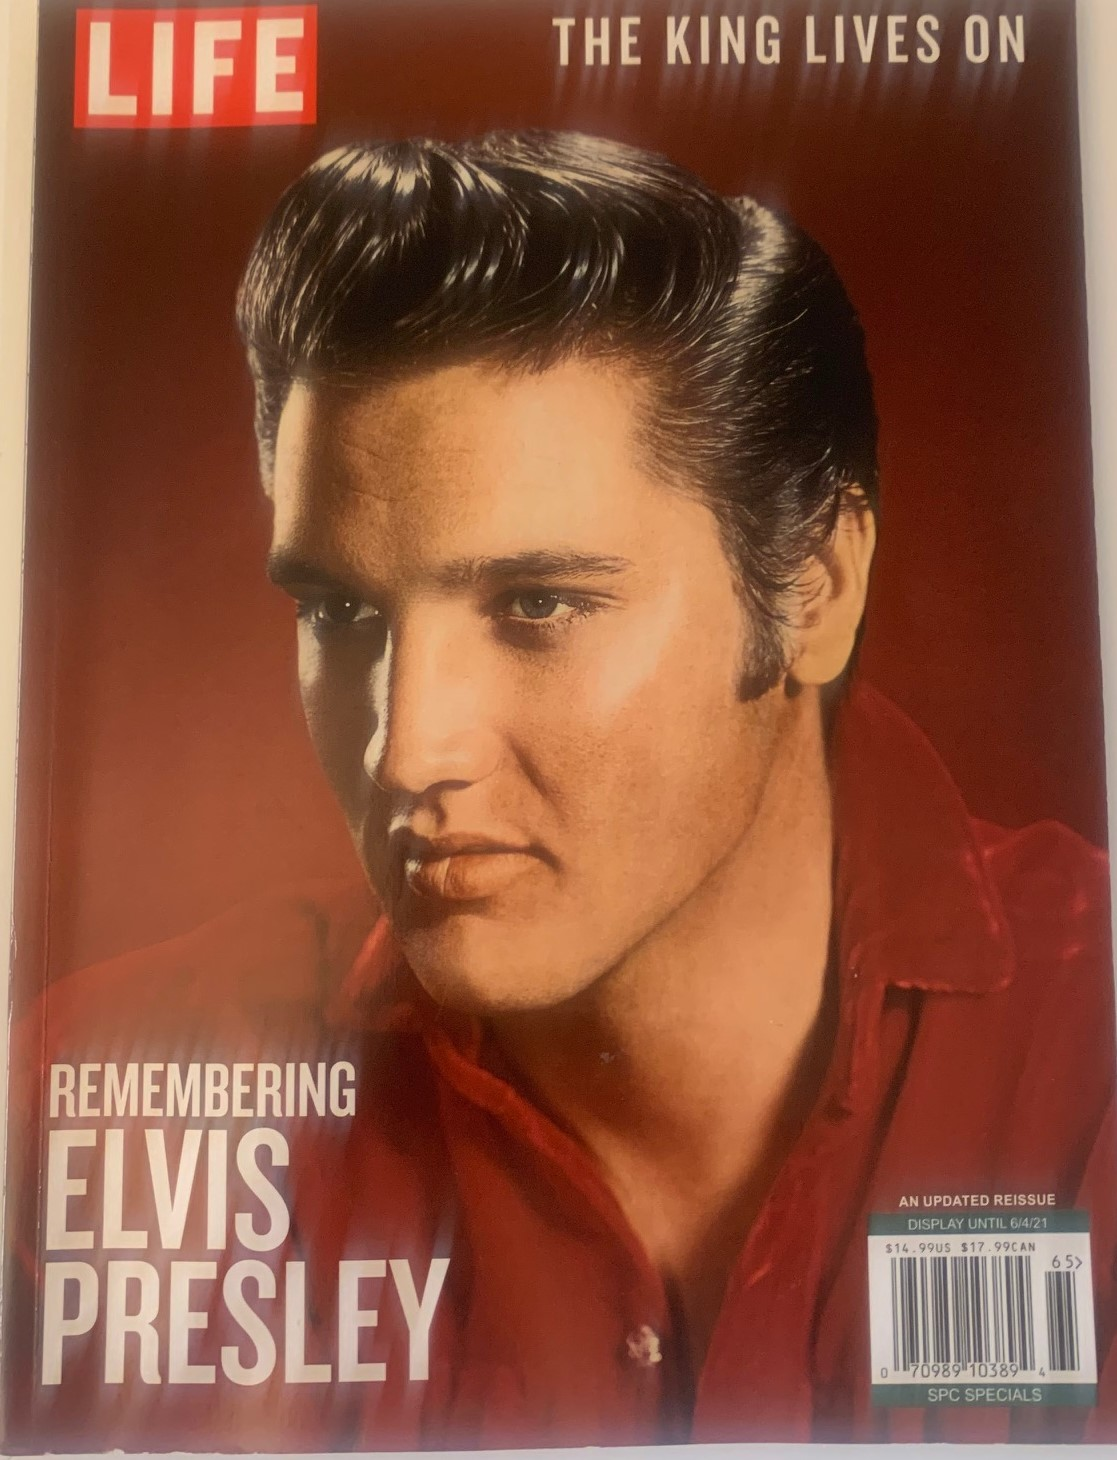 Elvis Presley-Life Magazine May 2021 Cover